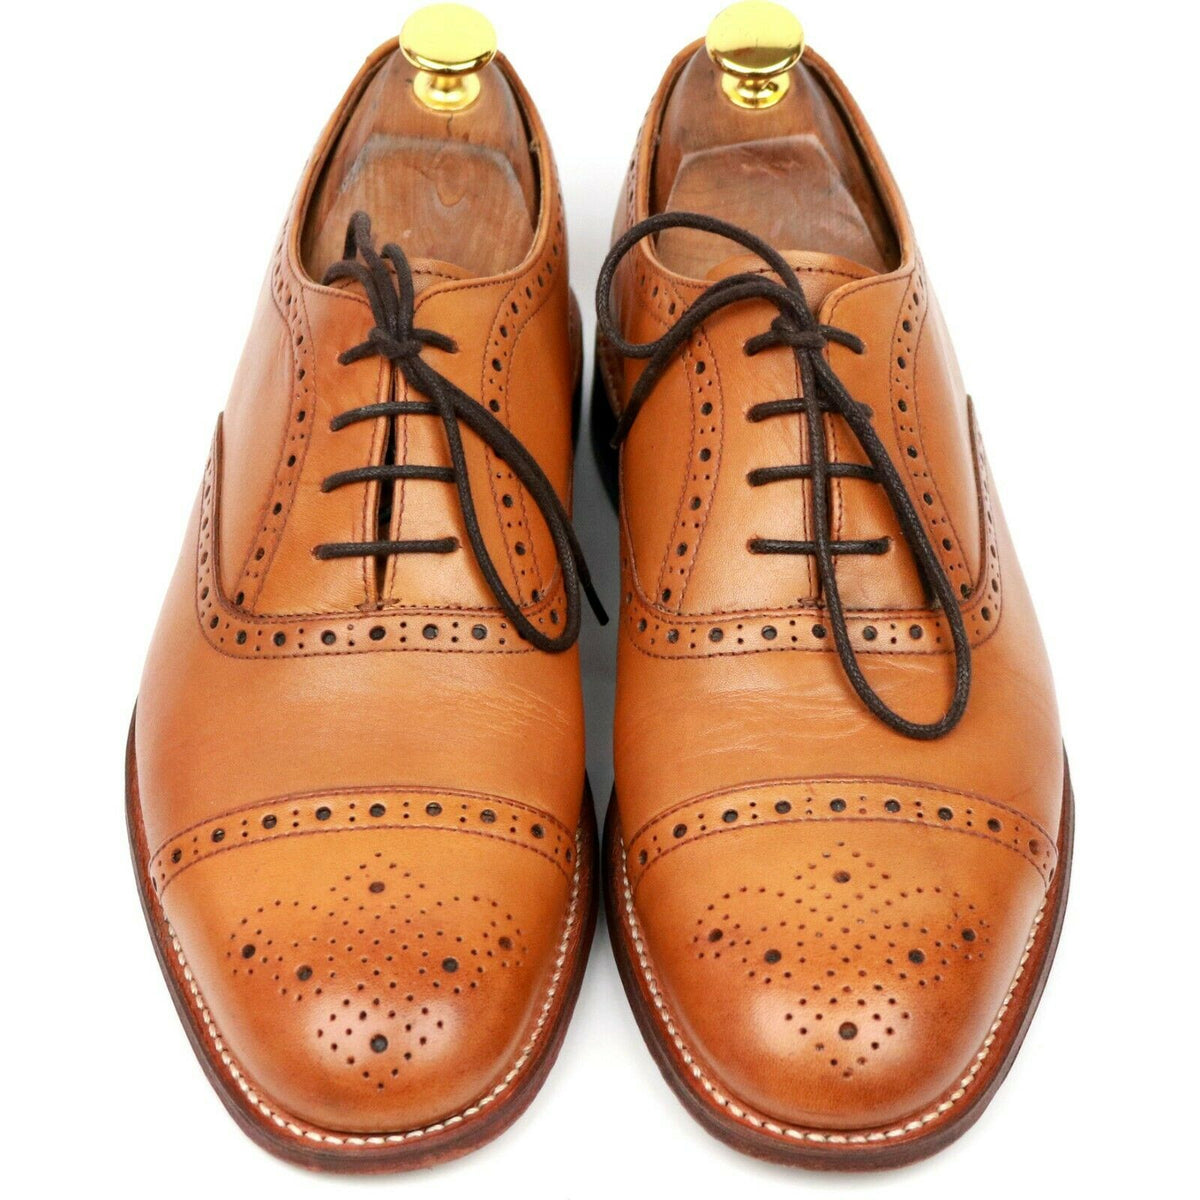 Grenson 'Matthew' Tan Brown Leather Oxford Semi Brogues UK 7 F